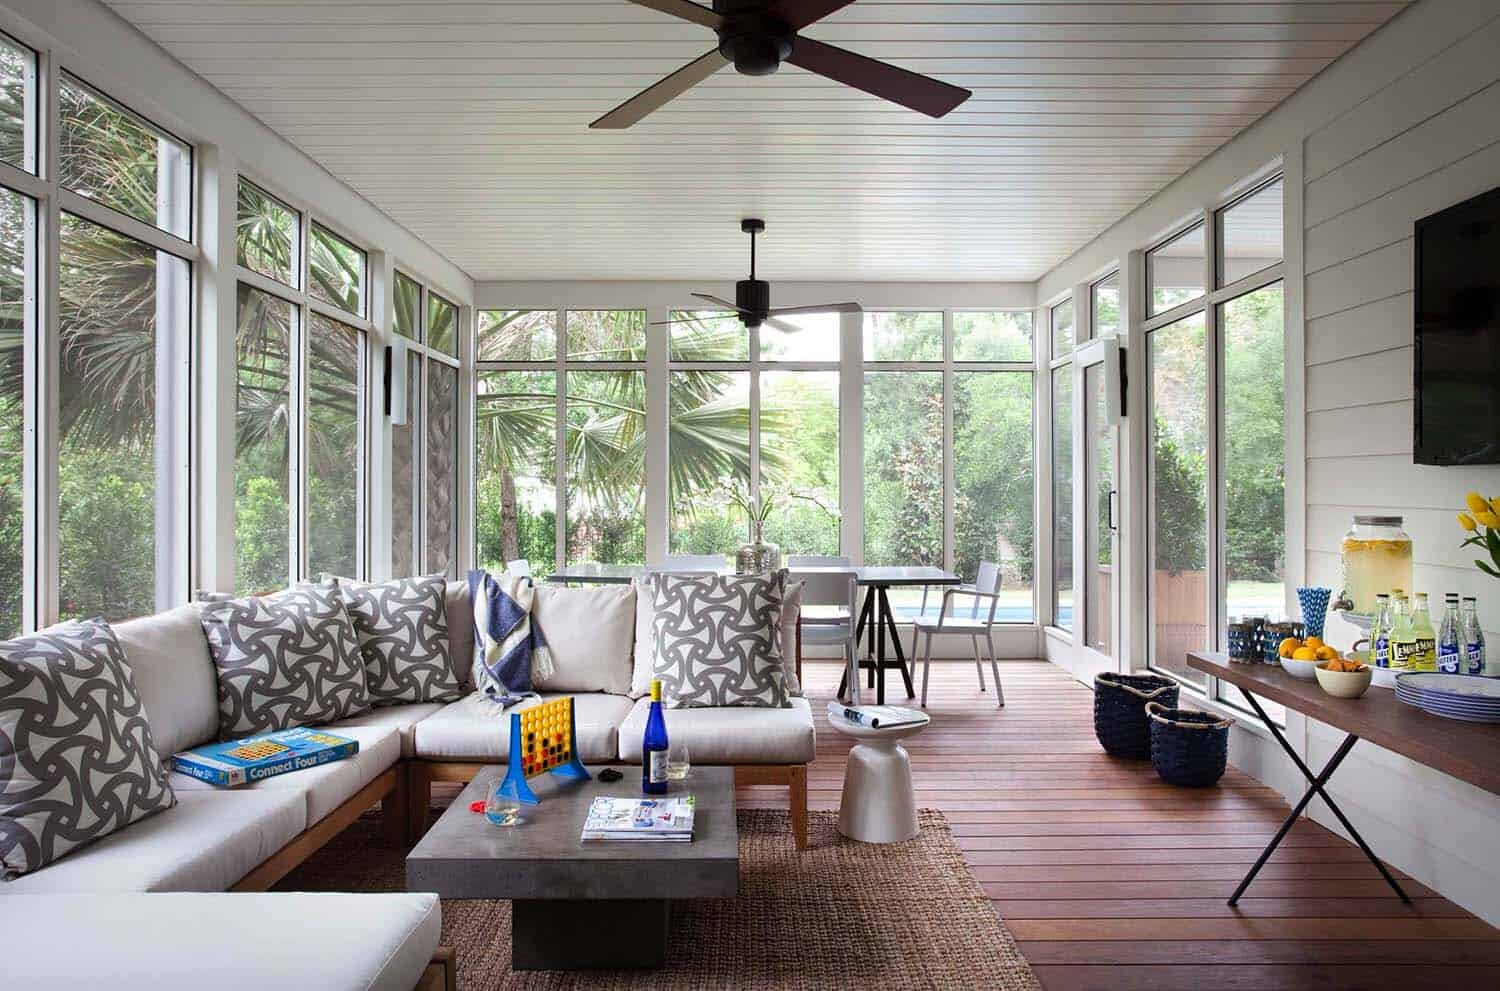 If you're style is more minimalist-then this sunroom will give you plenty of inspiration!